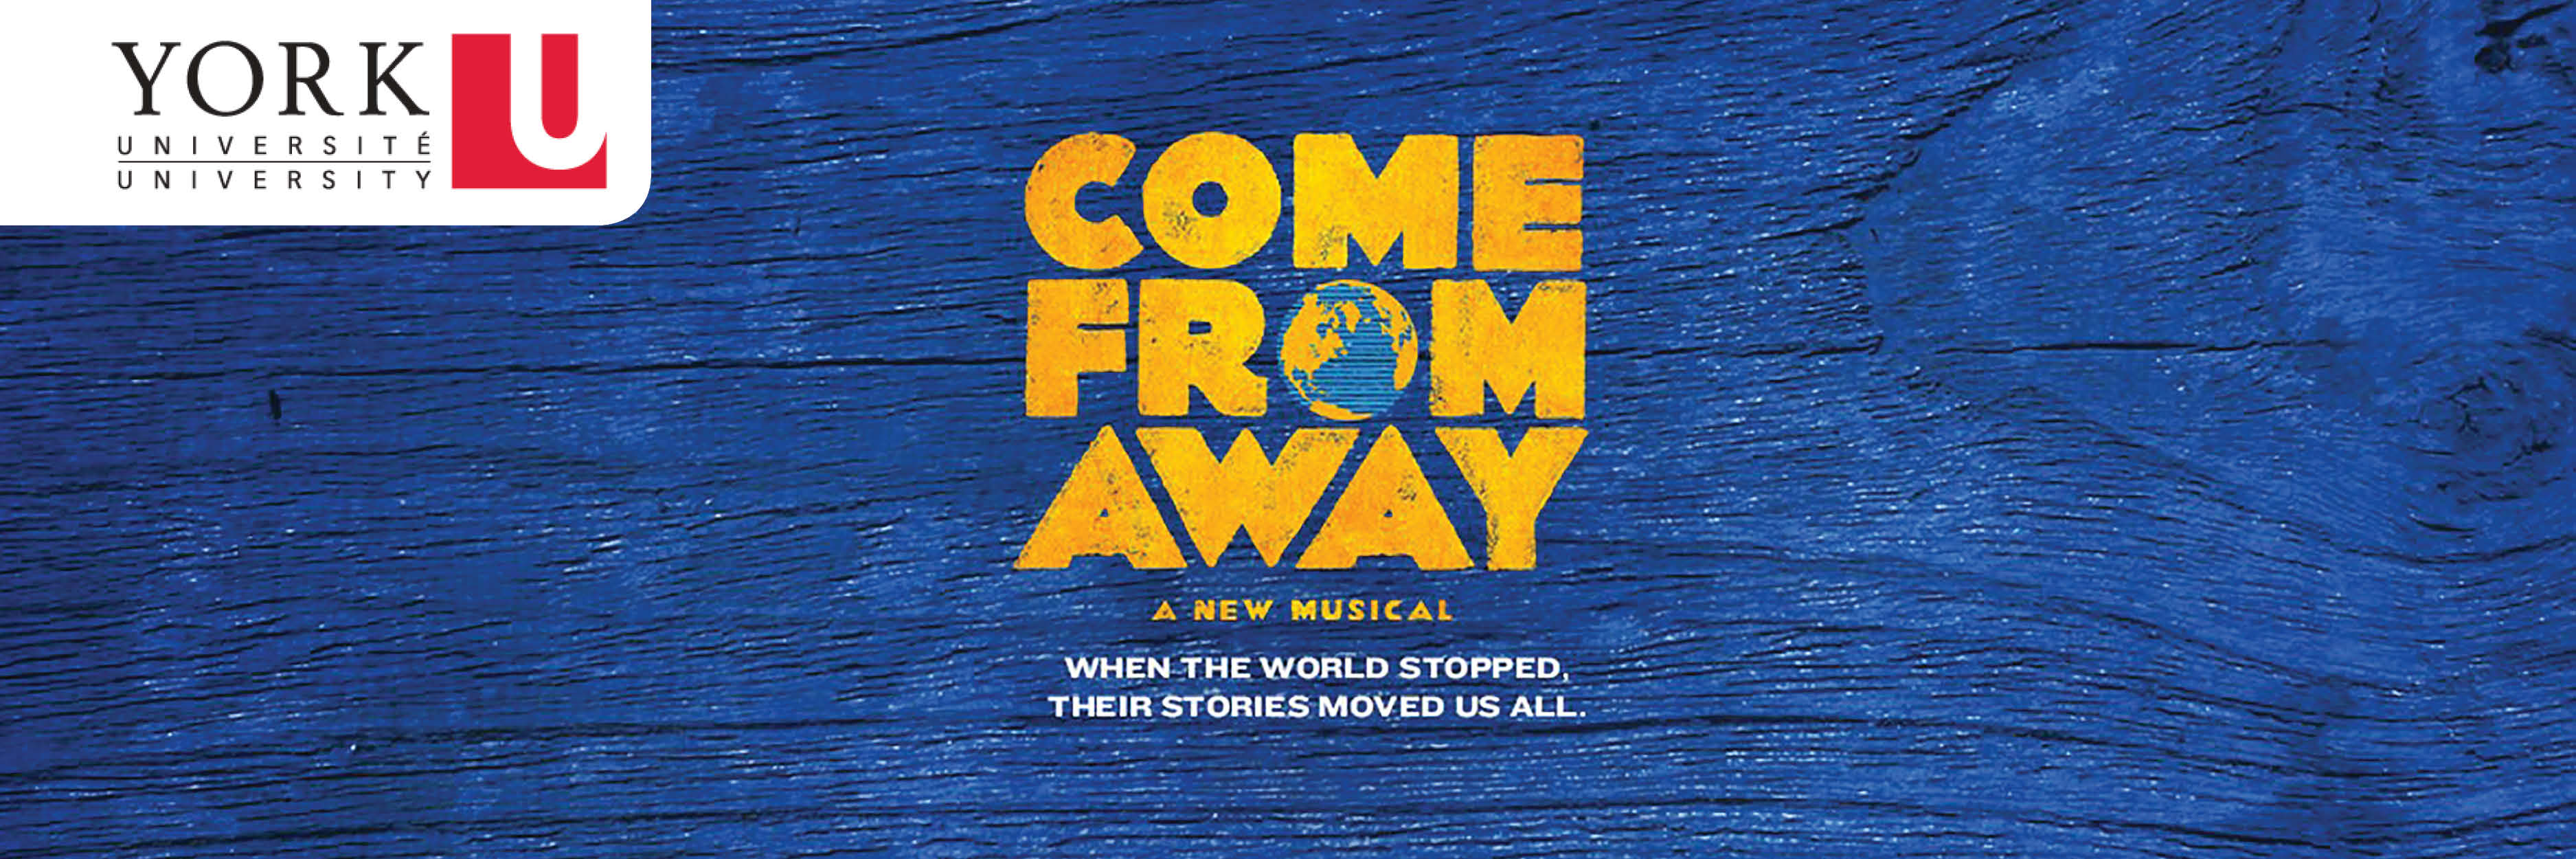 Come From Away exclusive York University alumni evening